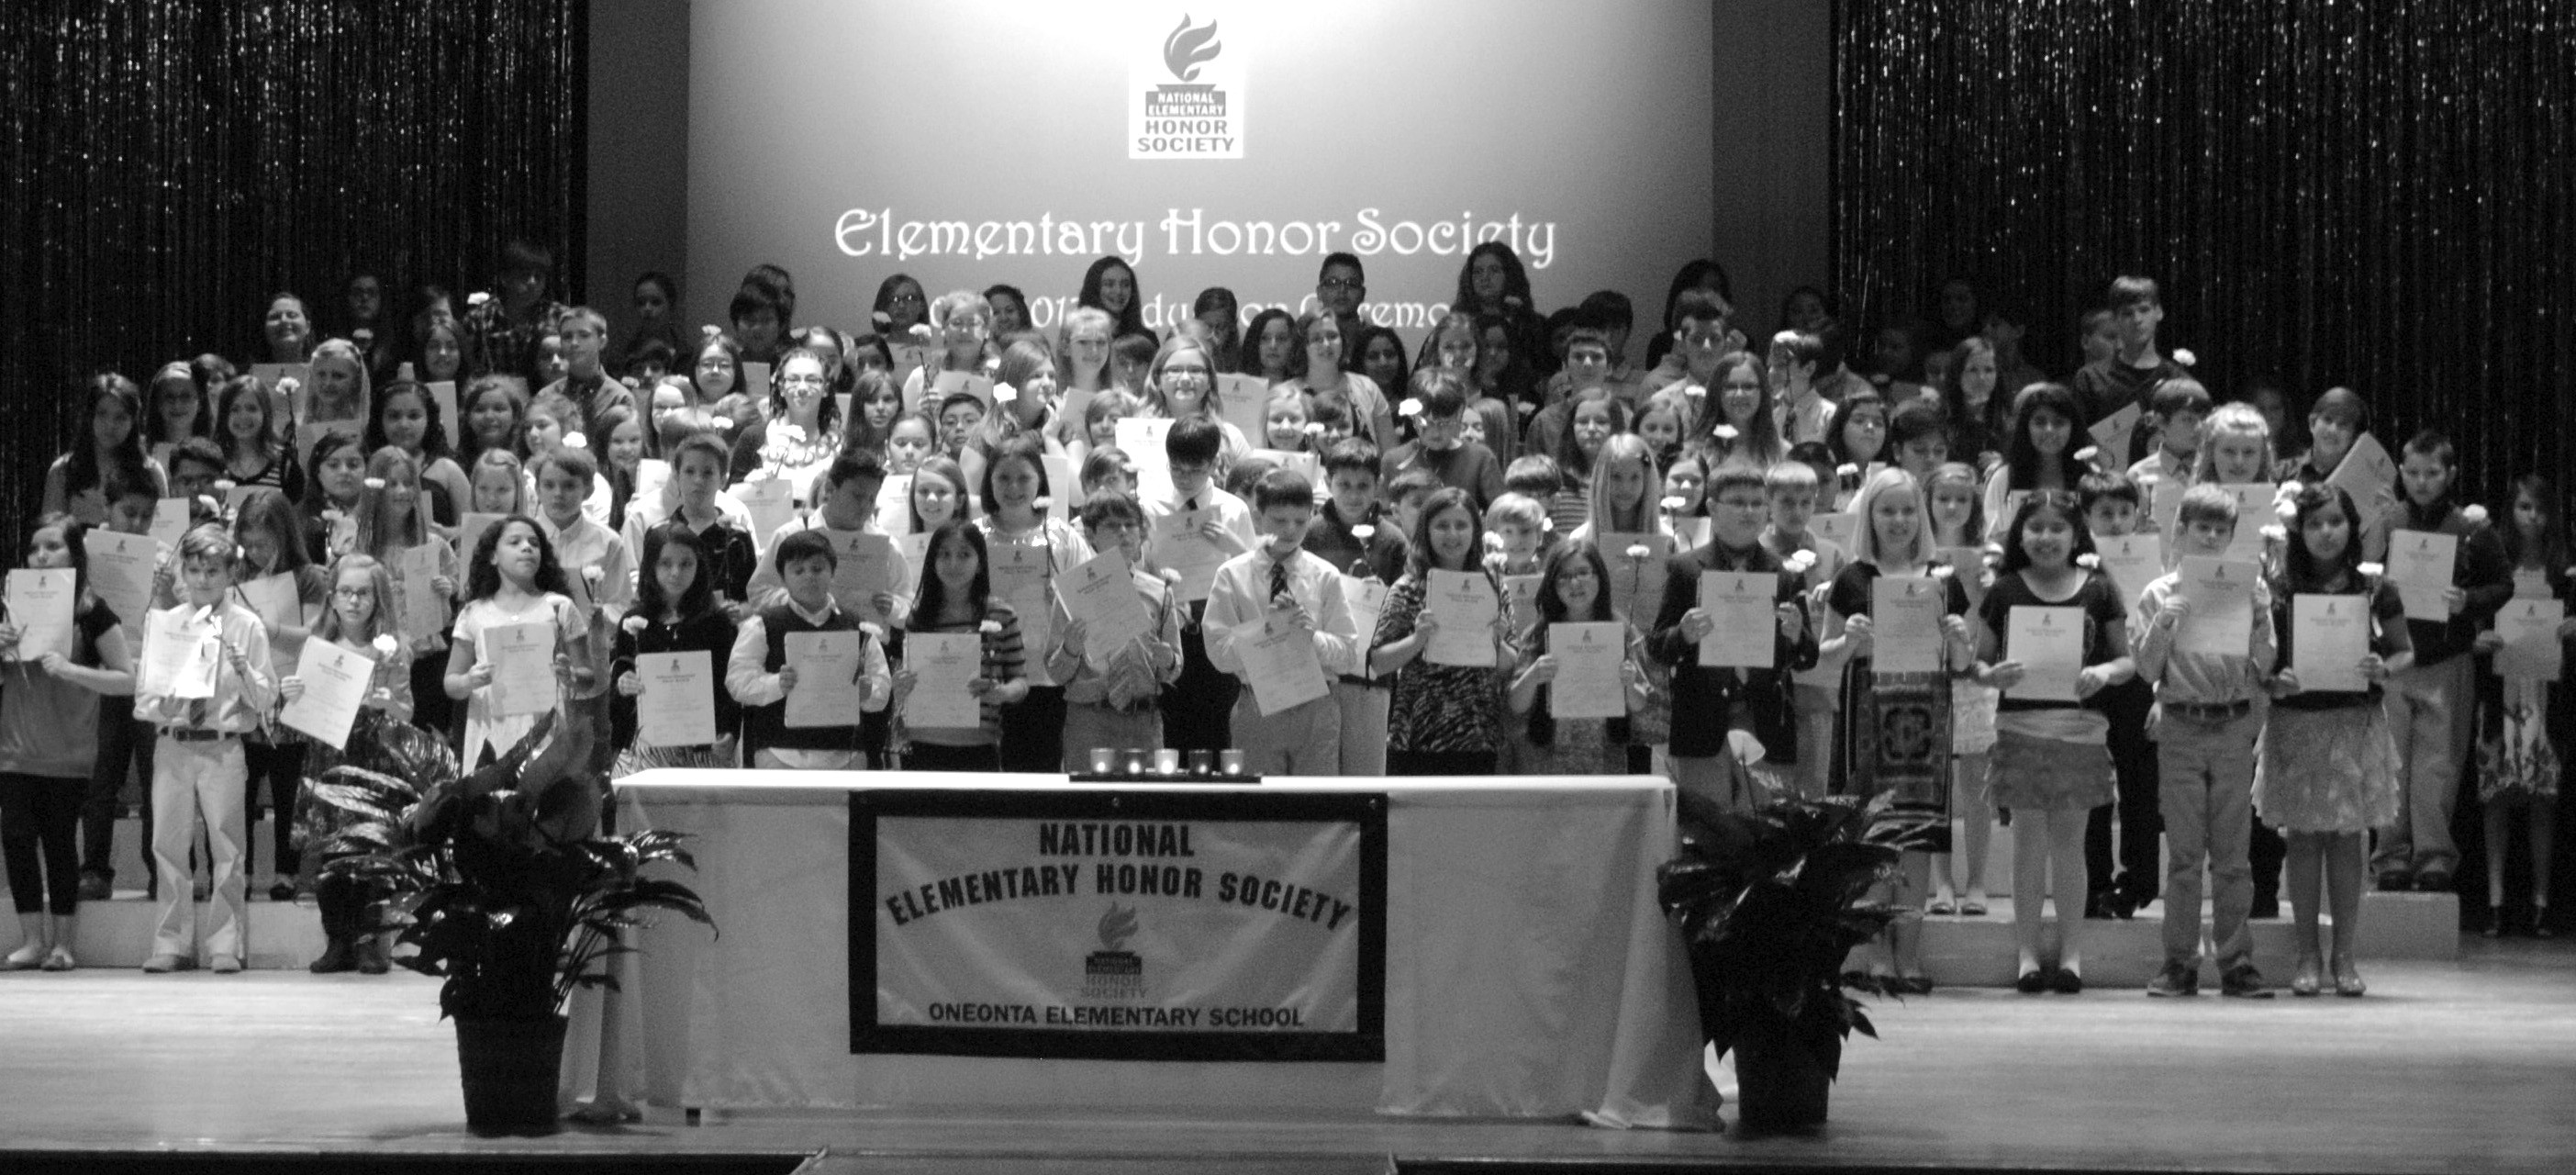 Oneonta Elementary hosted its inaugural National Honor Society ceremony on Monday in Eris Horton Auditorium. One hundred and thirty one students in grades 4 - 6 were inducted into the society. Students were chosen based on their performance in scholarship, service, leadership, character, and citizenship. Each inductee was presented with a yellow carnation and a certificate after being tapped by a National Honor Society member from Oneonta High School. Guest speaker Matt Scott of Oneonta First Baptist talked about character before the students were dismissed to attend a reception for the inductees and their families. – Nicole Singleton